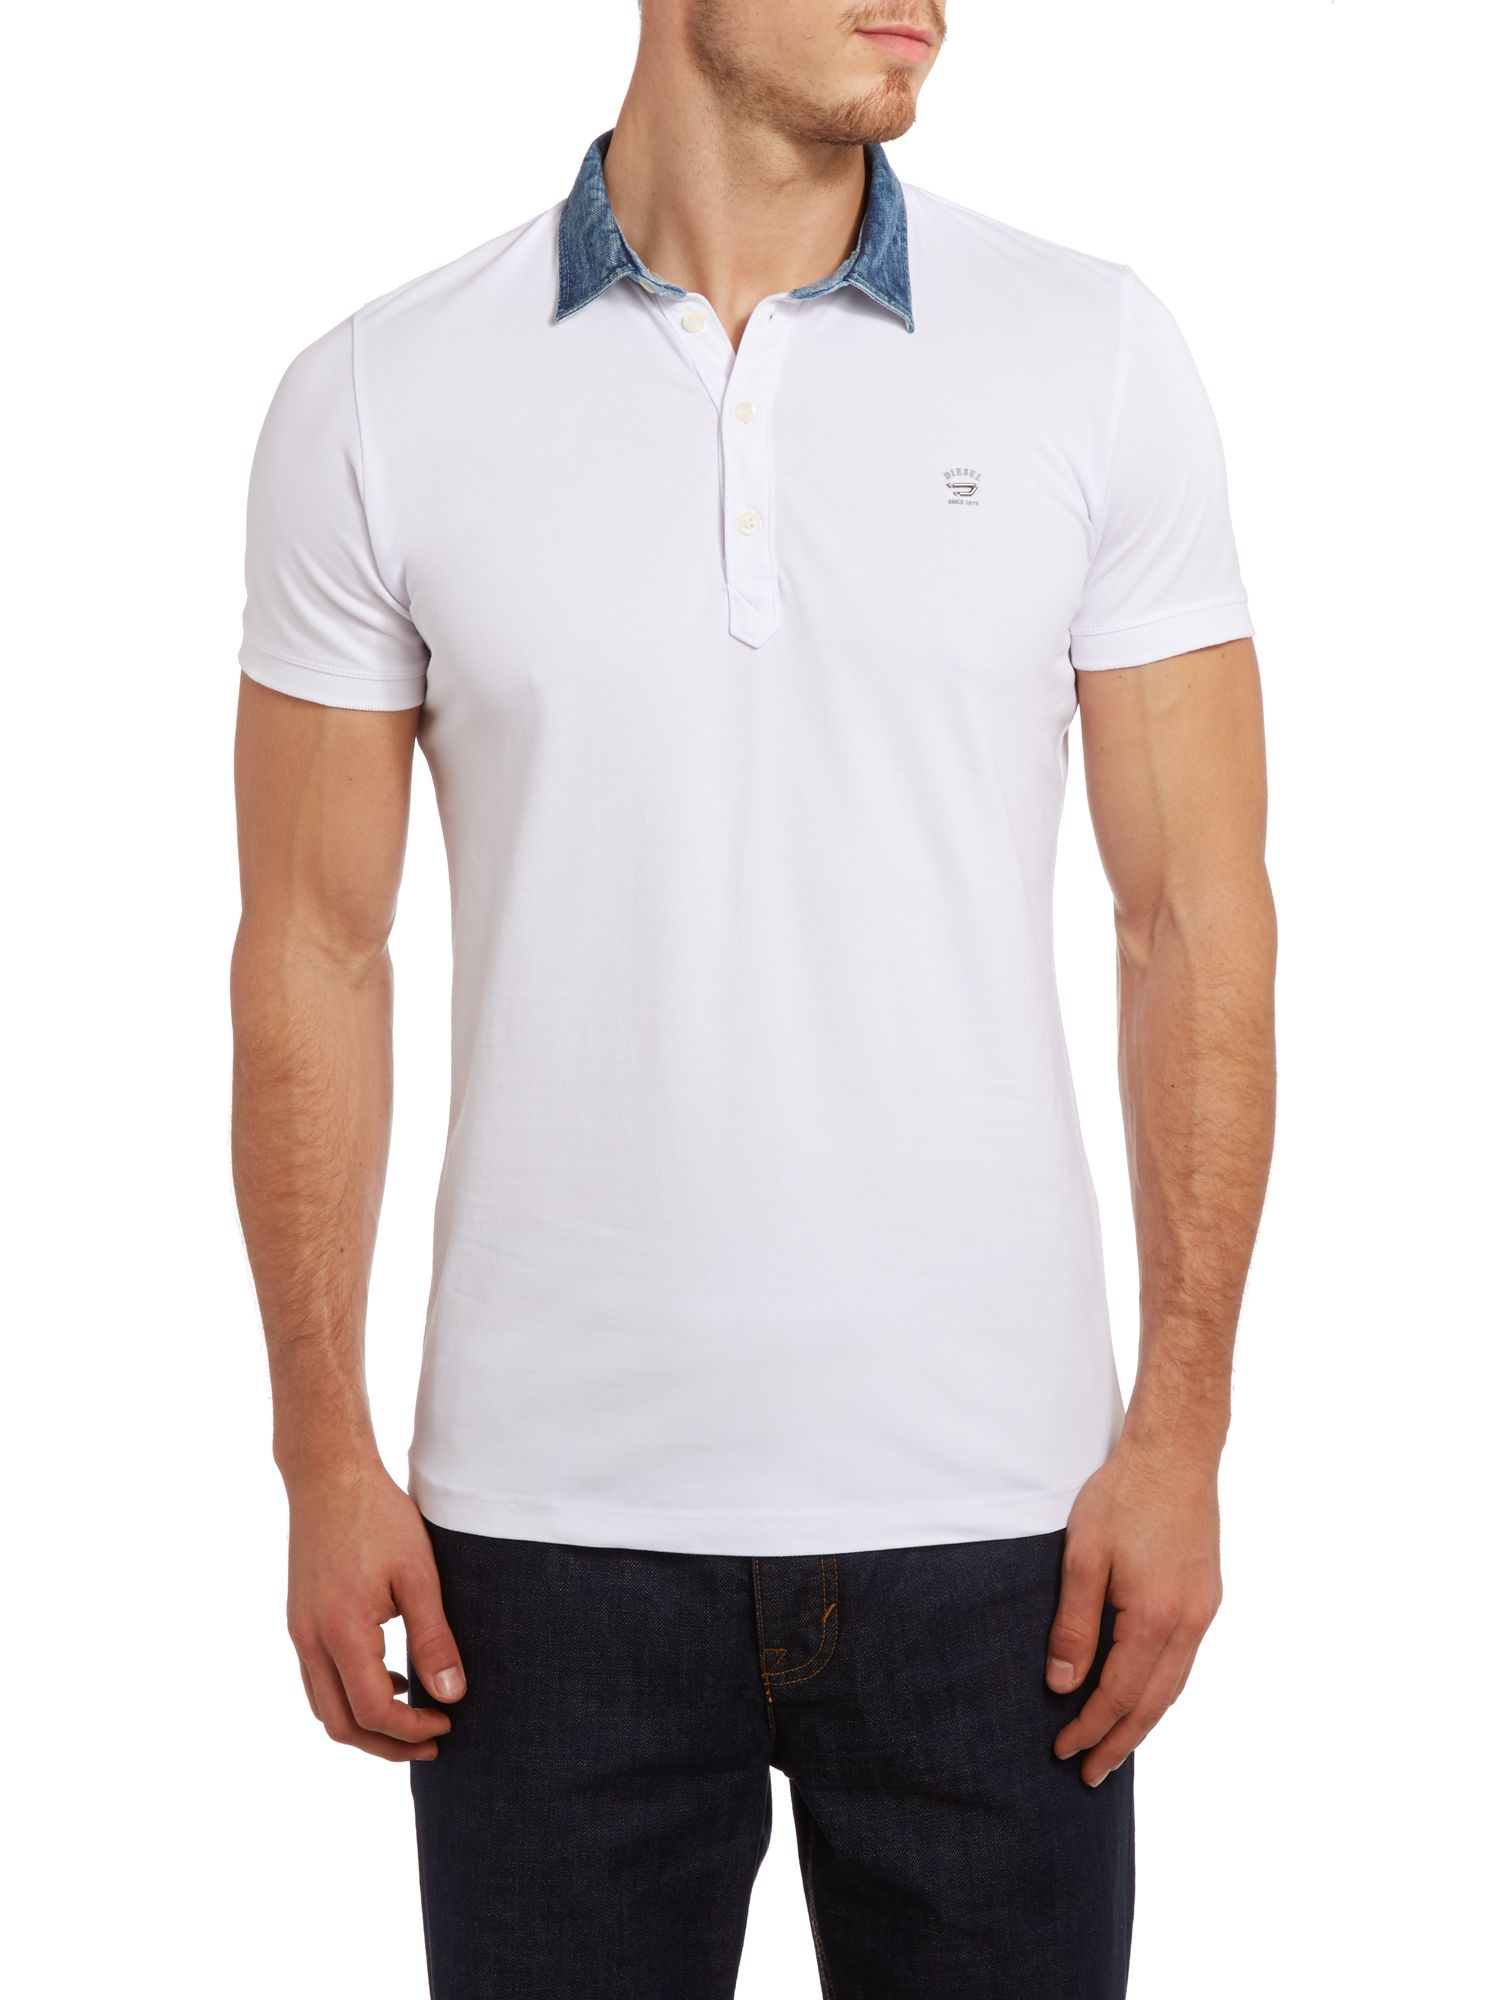 T-brillo denim collar polo shirt